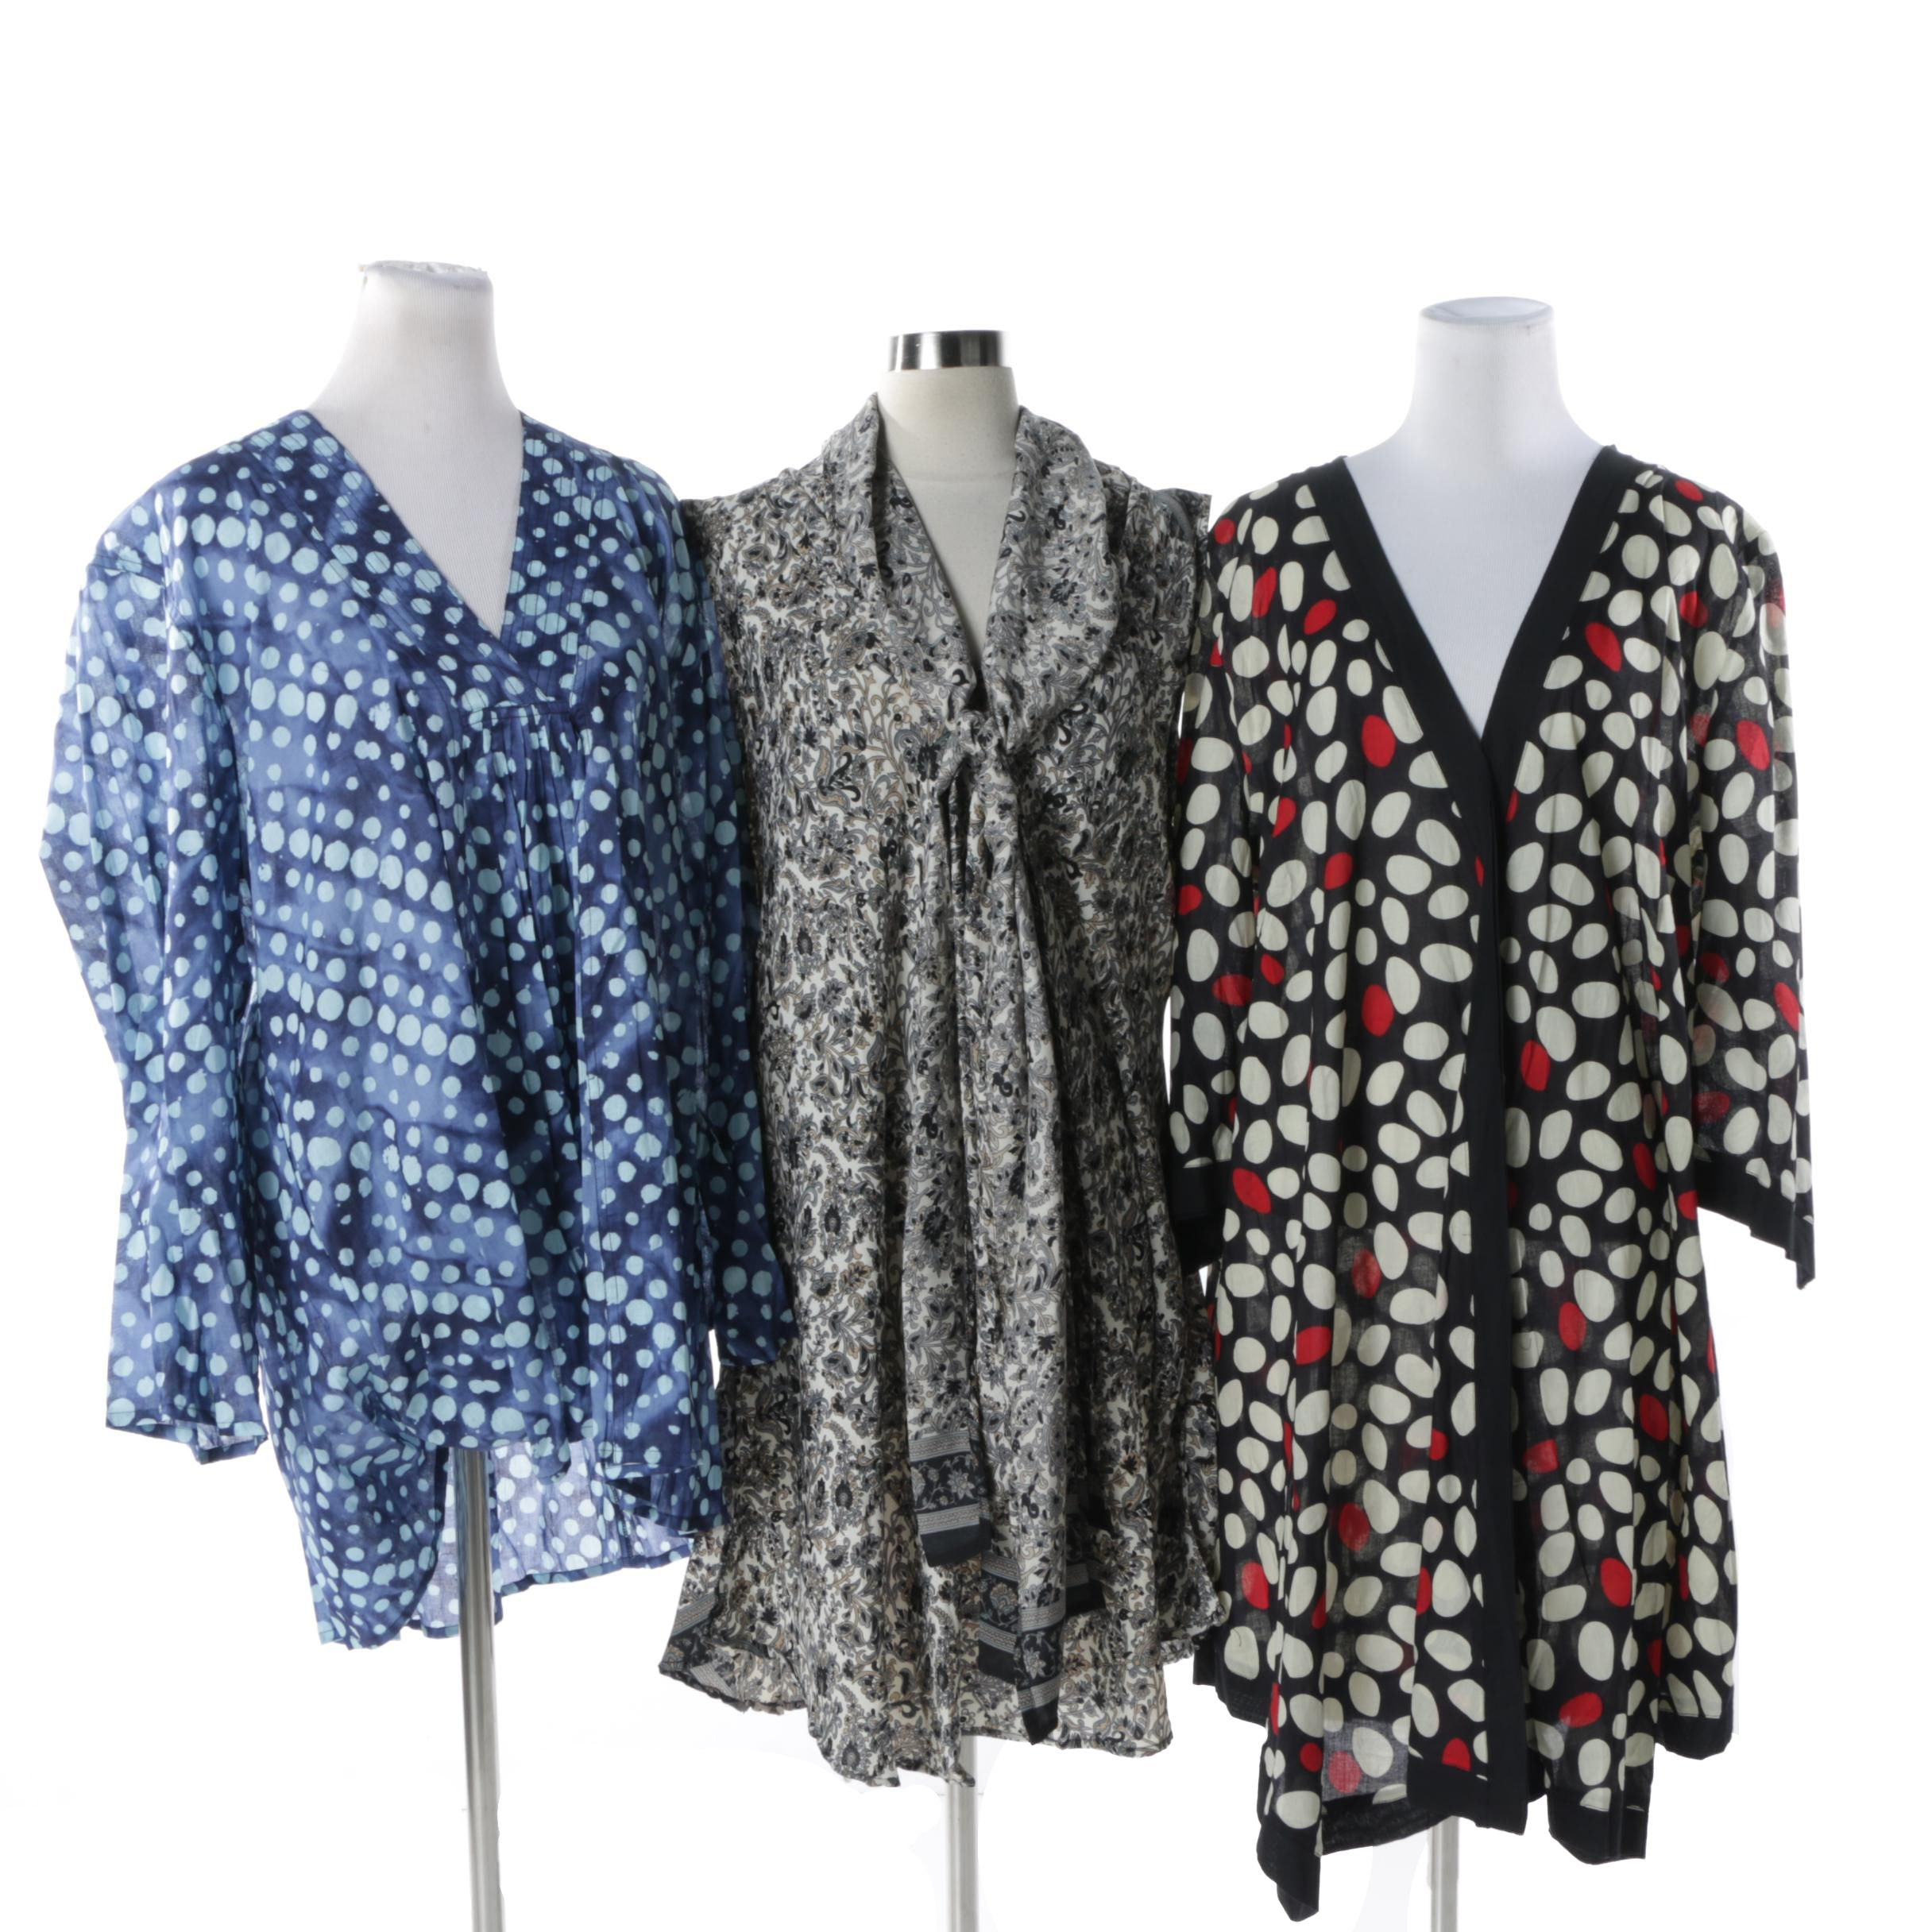 Aller Simplement 2X Tunic and Dresses